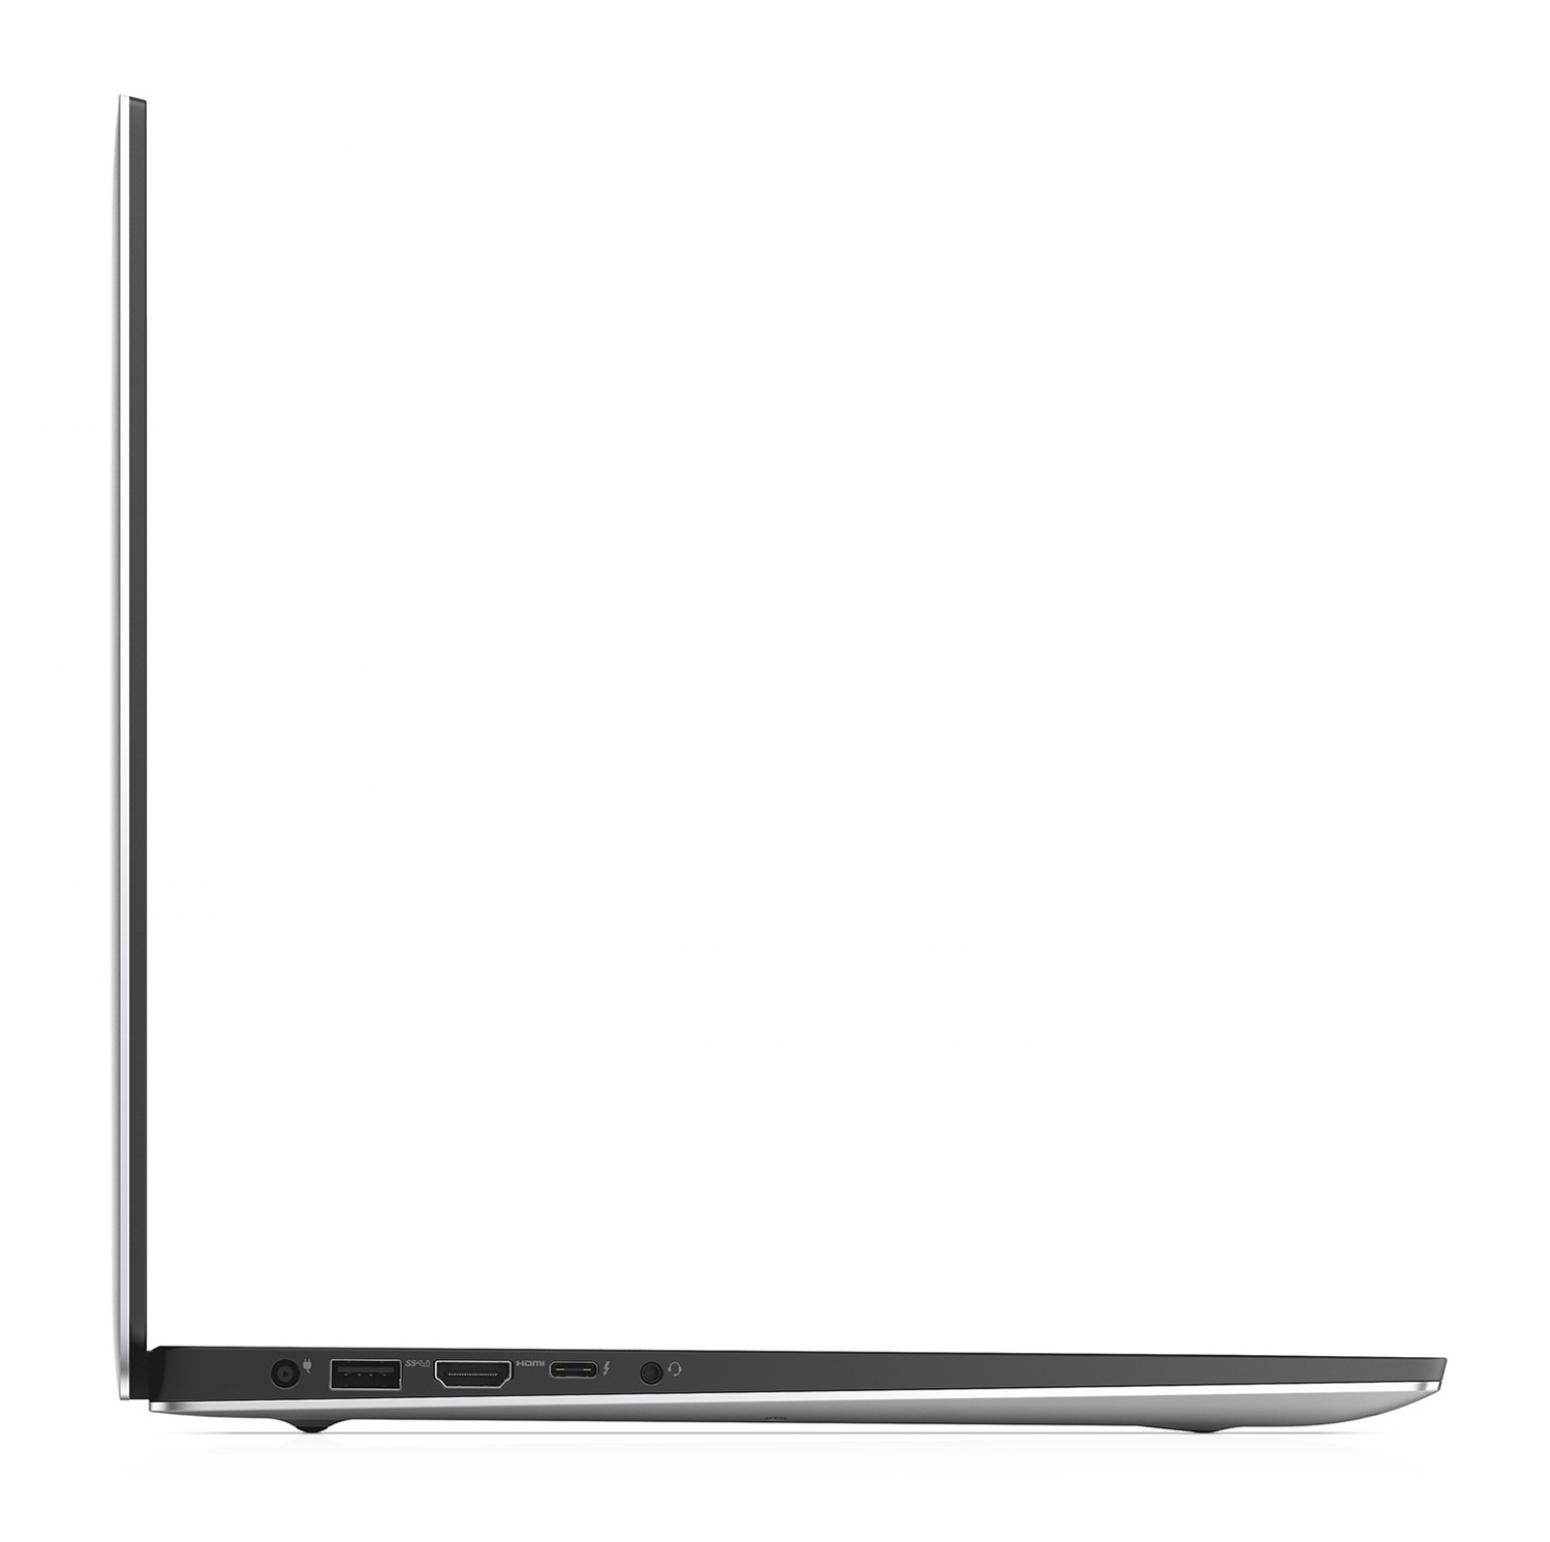 Ordinateur portable Dell XPS 15 7590 (1680) - OLED 4K, GTX 1650, SSD 1 To - photo 7